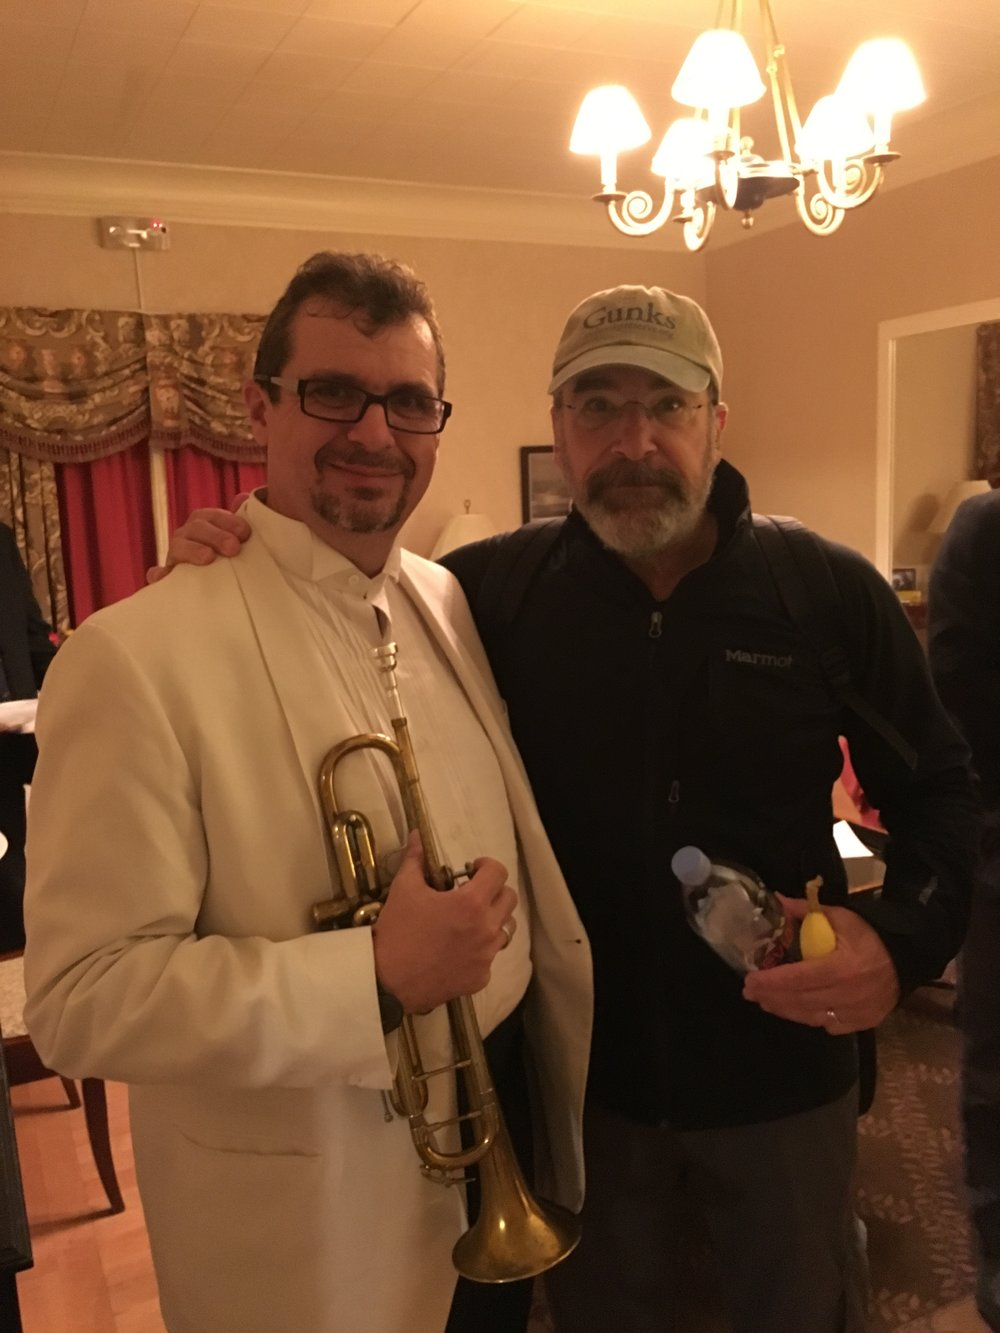 With Mandy Patinkin at Boston Pops